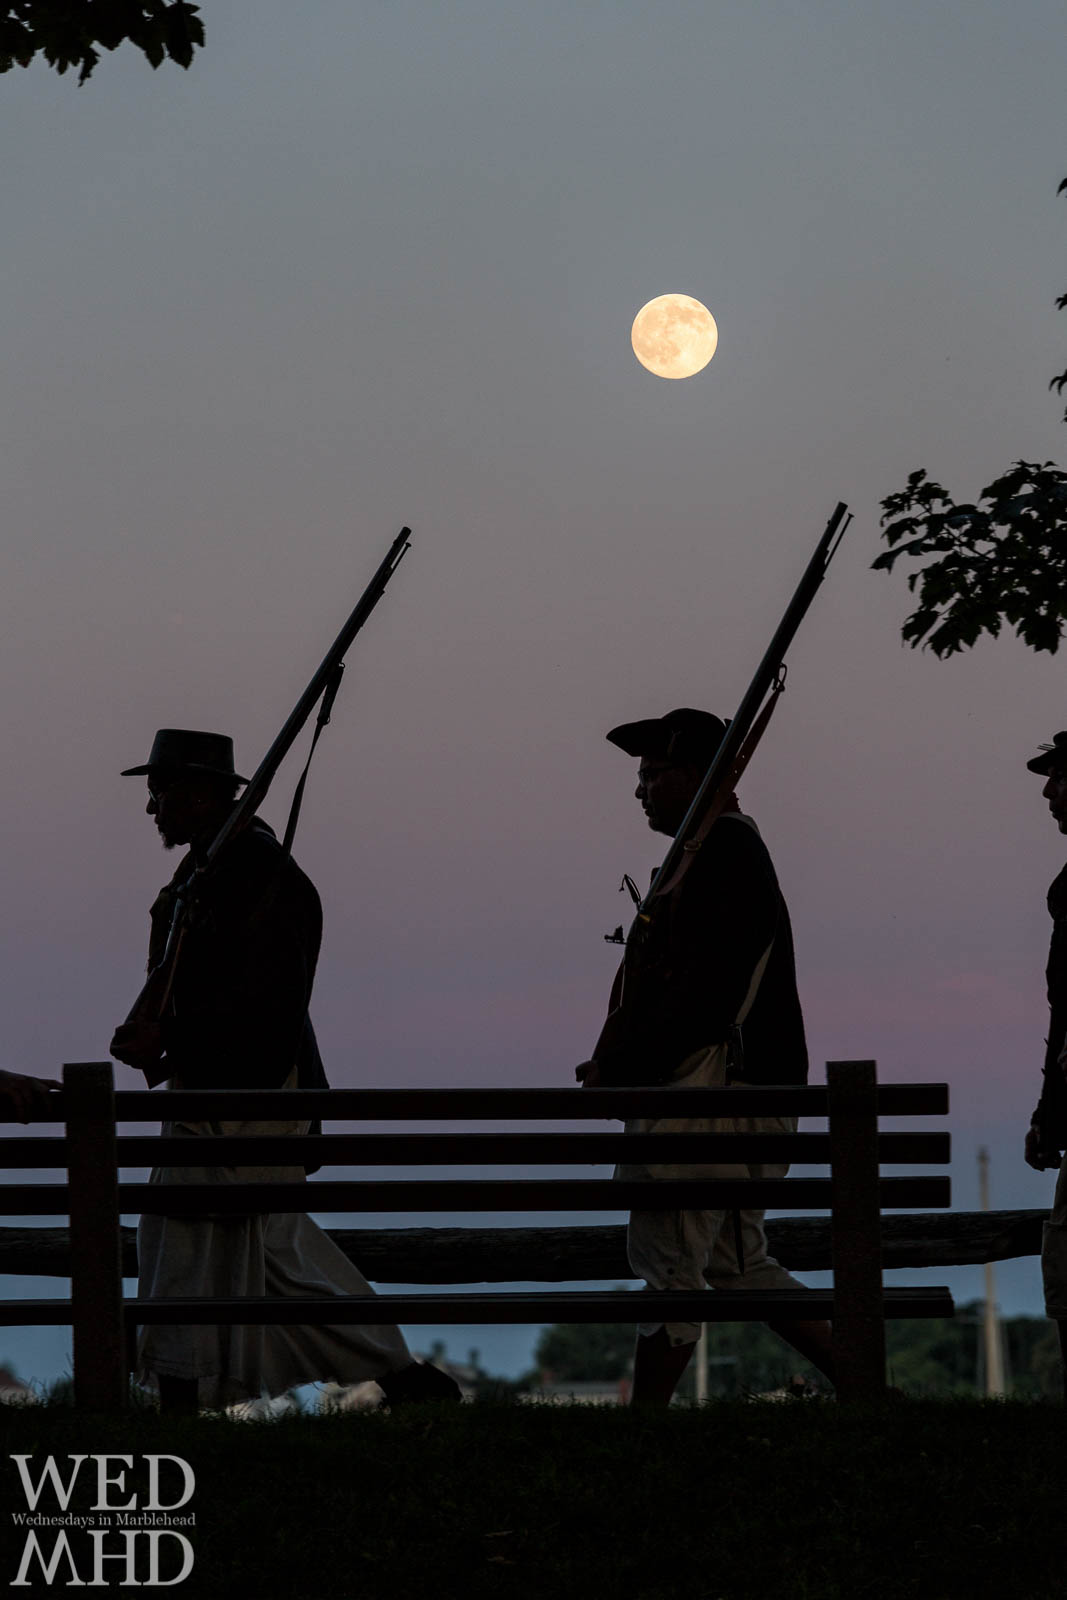 Glover's Regiment Marching Under the Full Moon